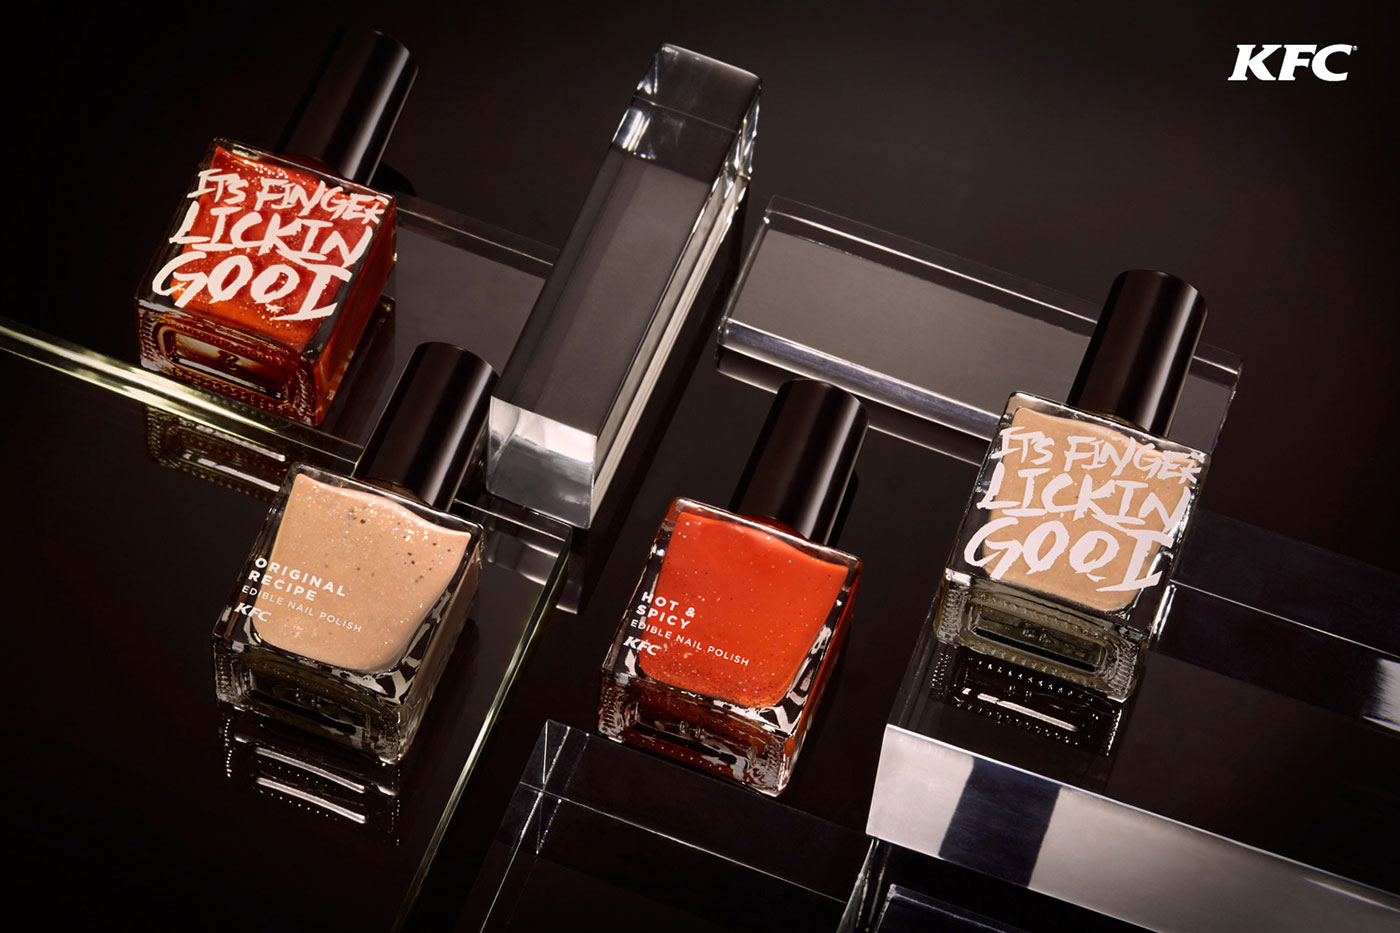 KFC-flavored nail polish gives new meaning to \'chicken fingers\'